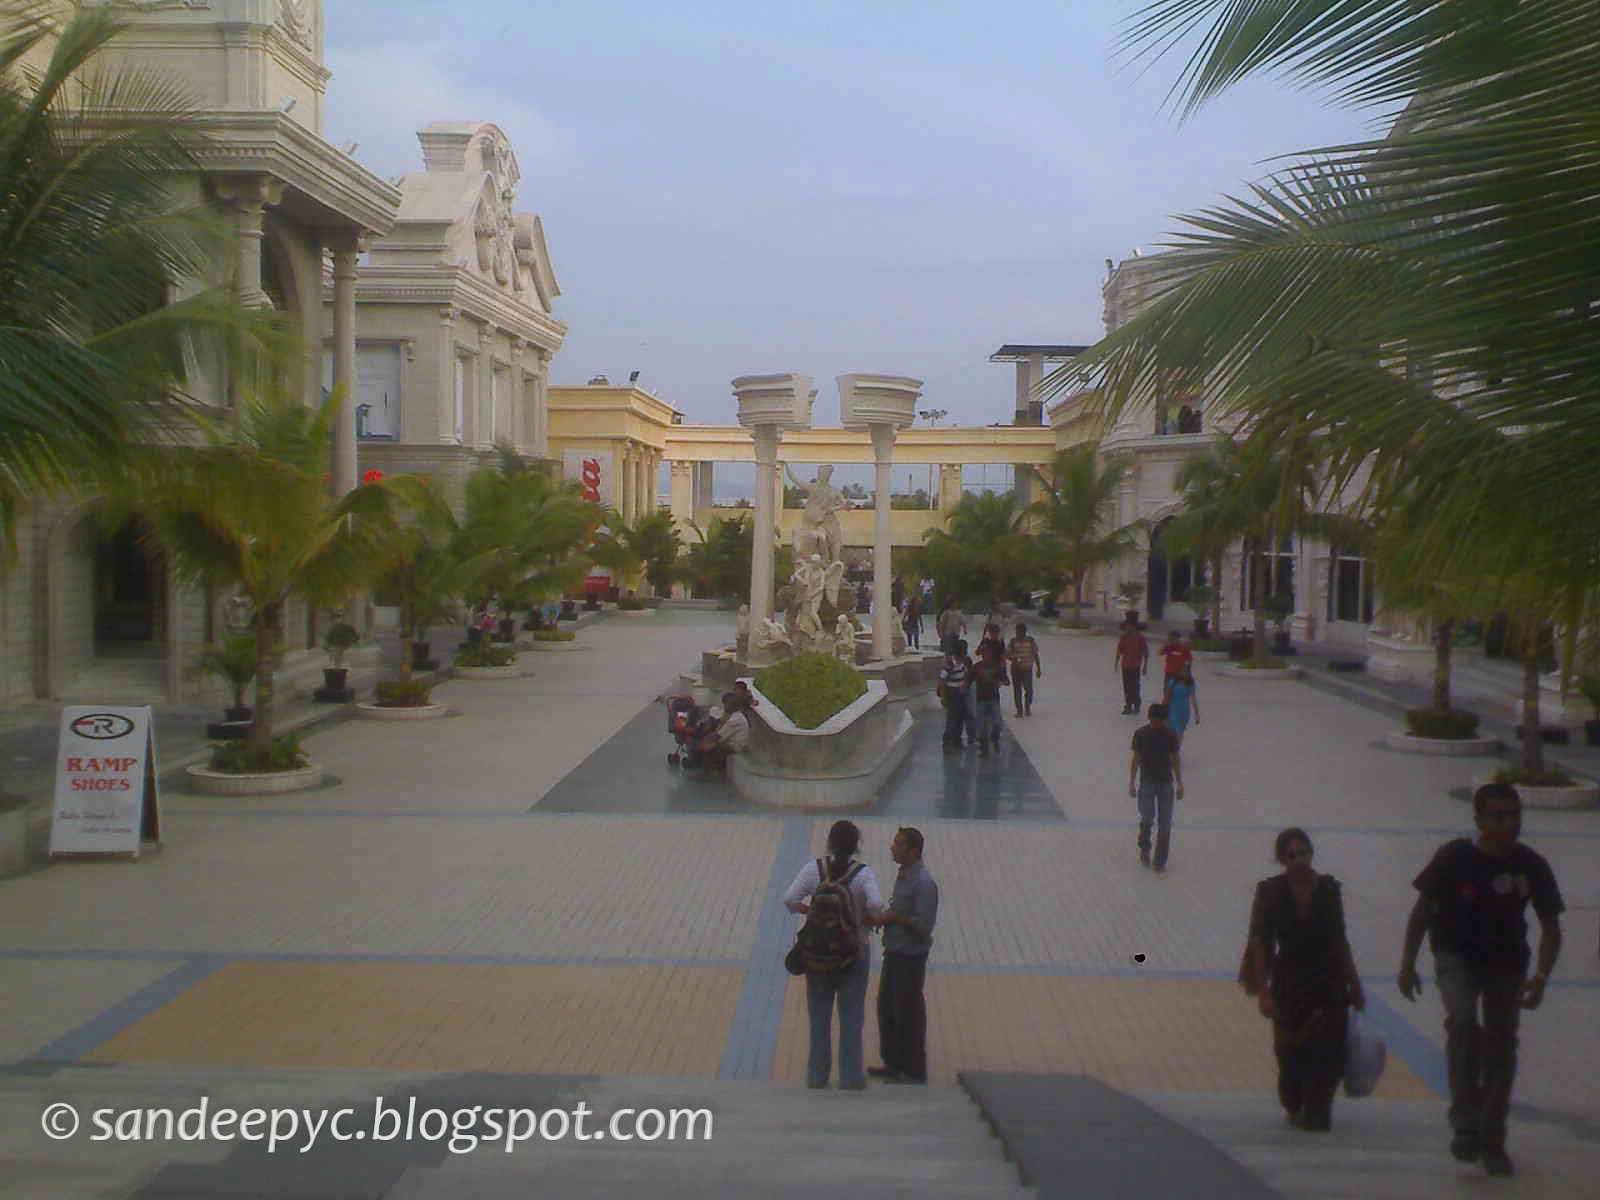 inside Innovative Film CIty, Main street